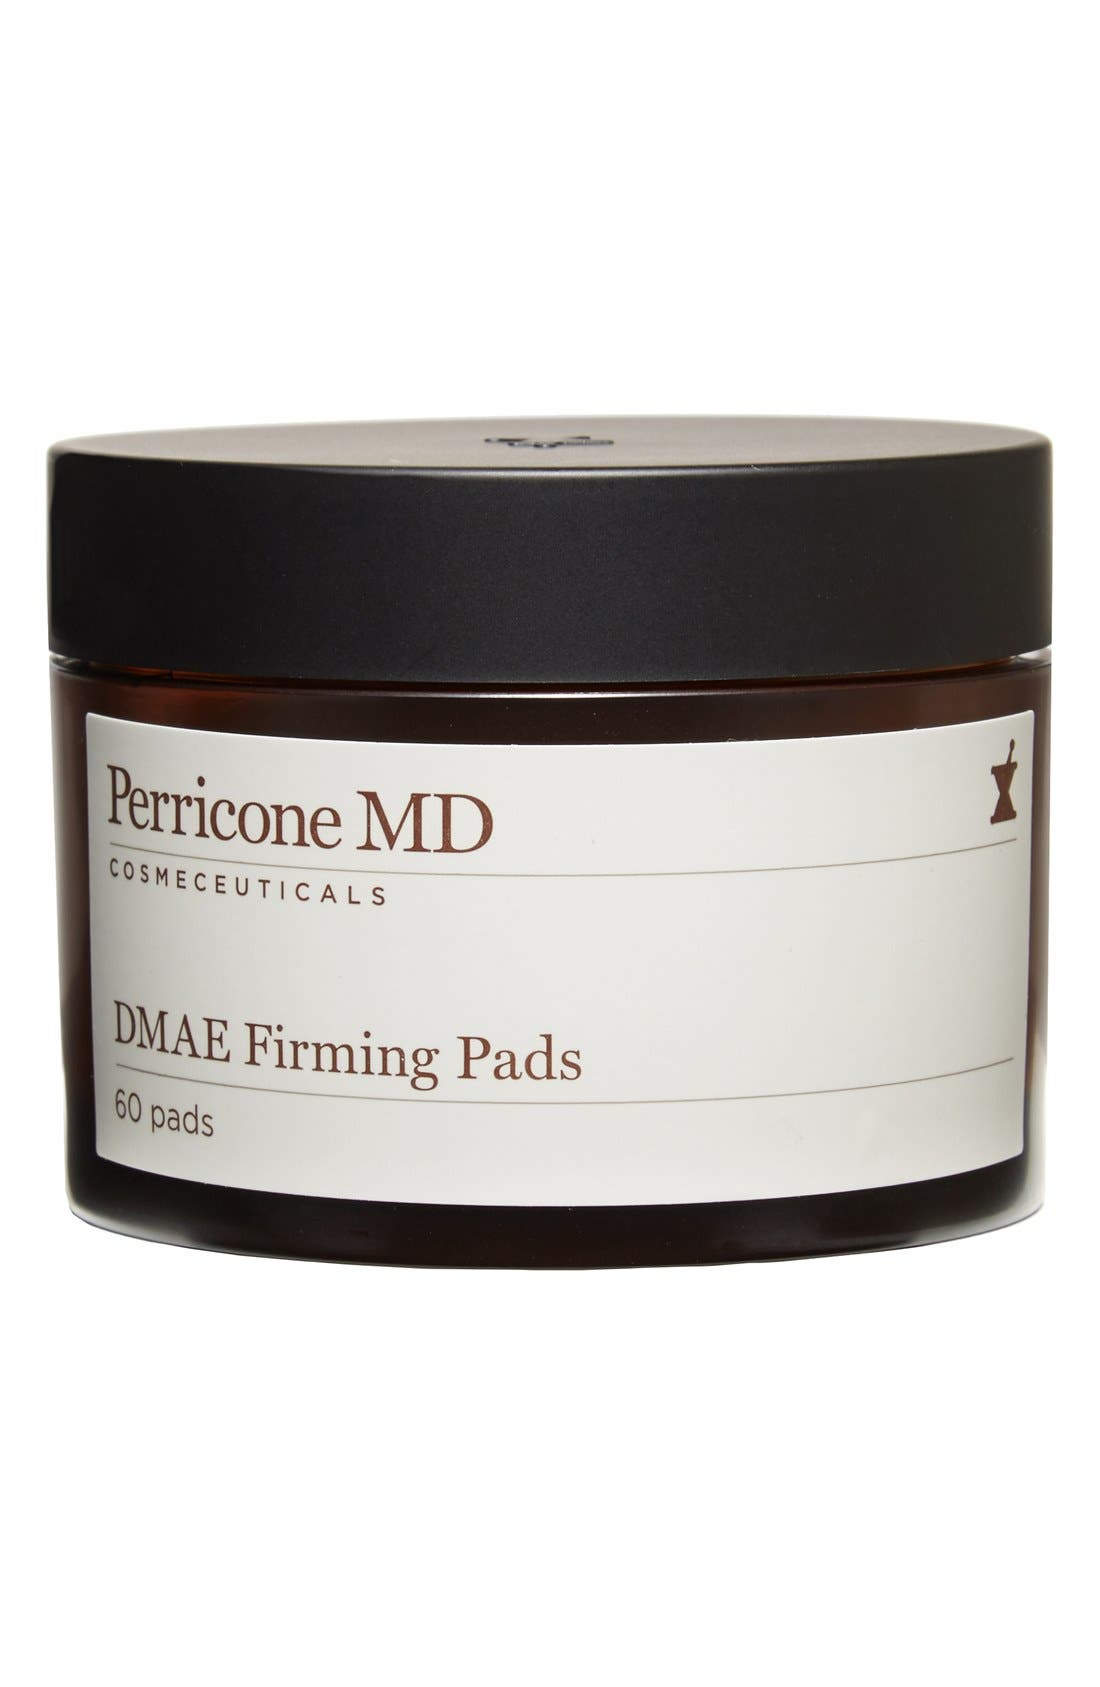 DMAE Firming Pads,                         Main,                         color, 000